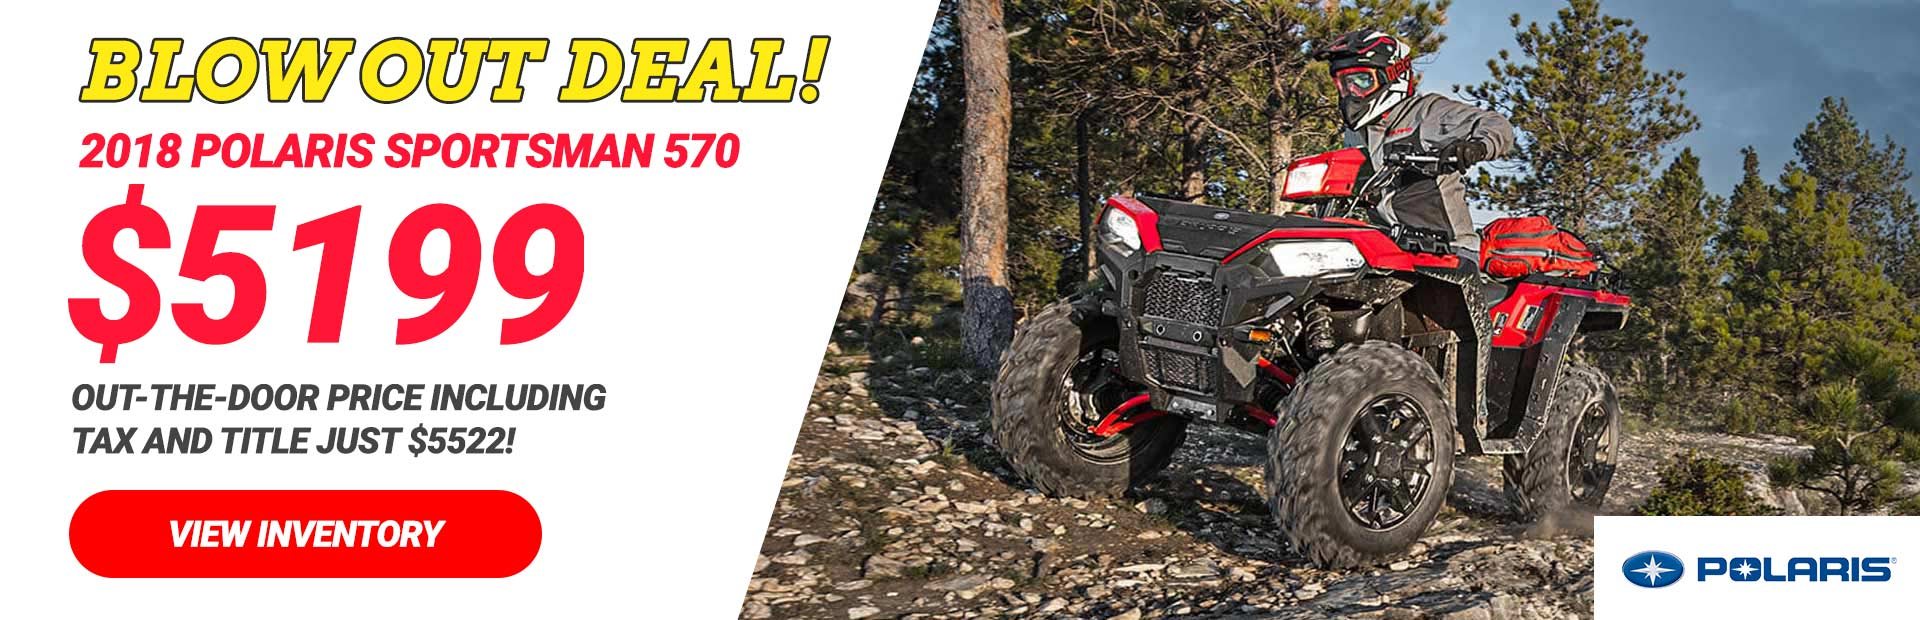 2017 Polaris ATV Blowout!